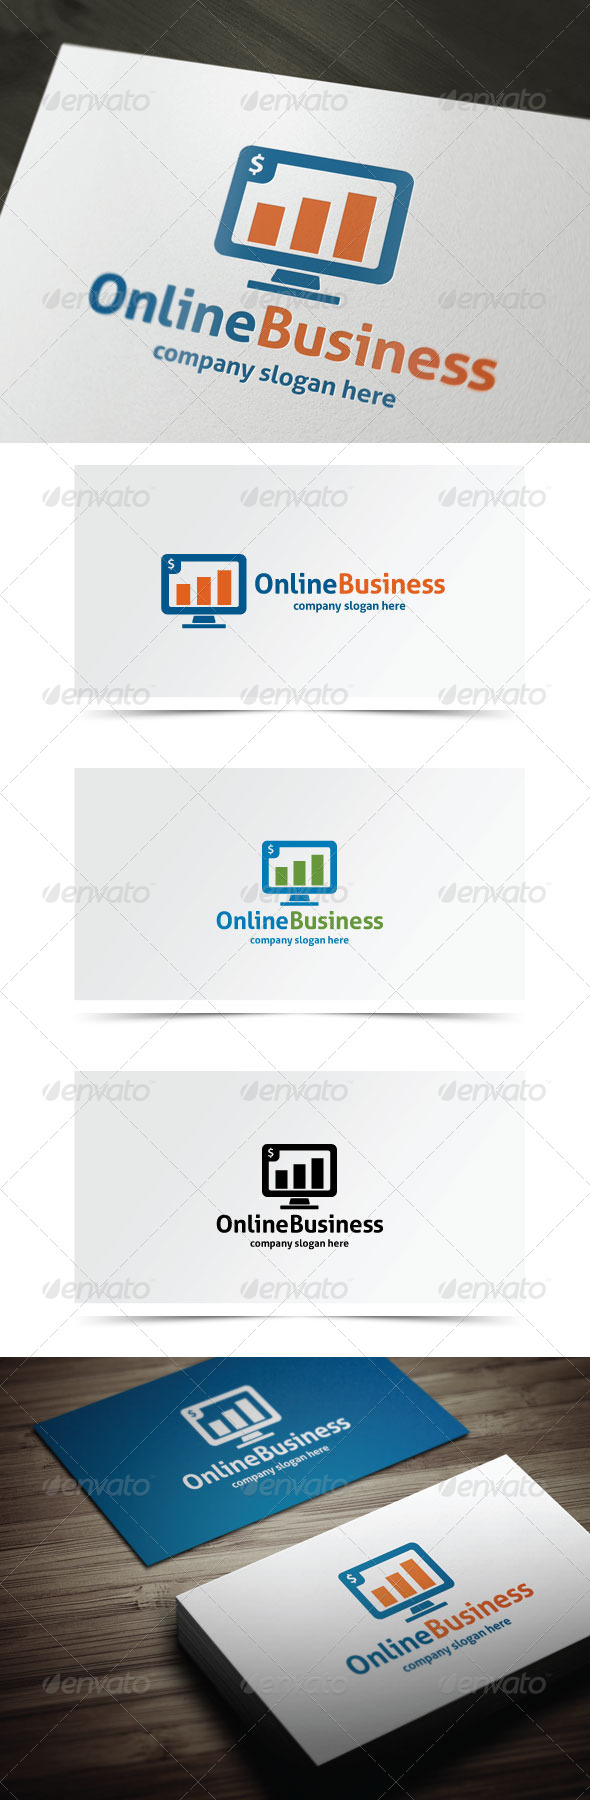 Online Business - Symbols Logo Templates